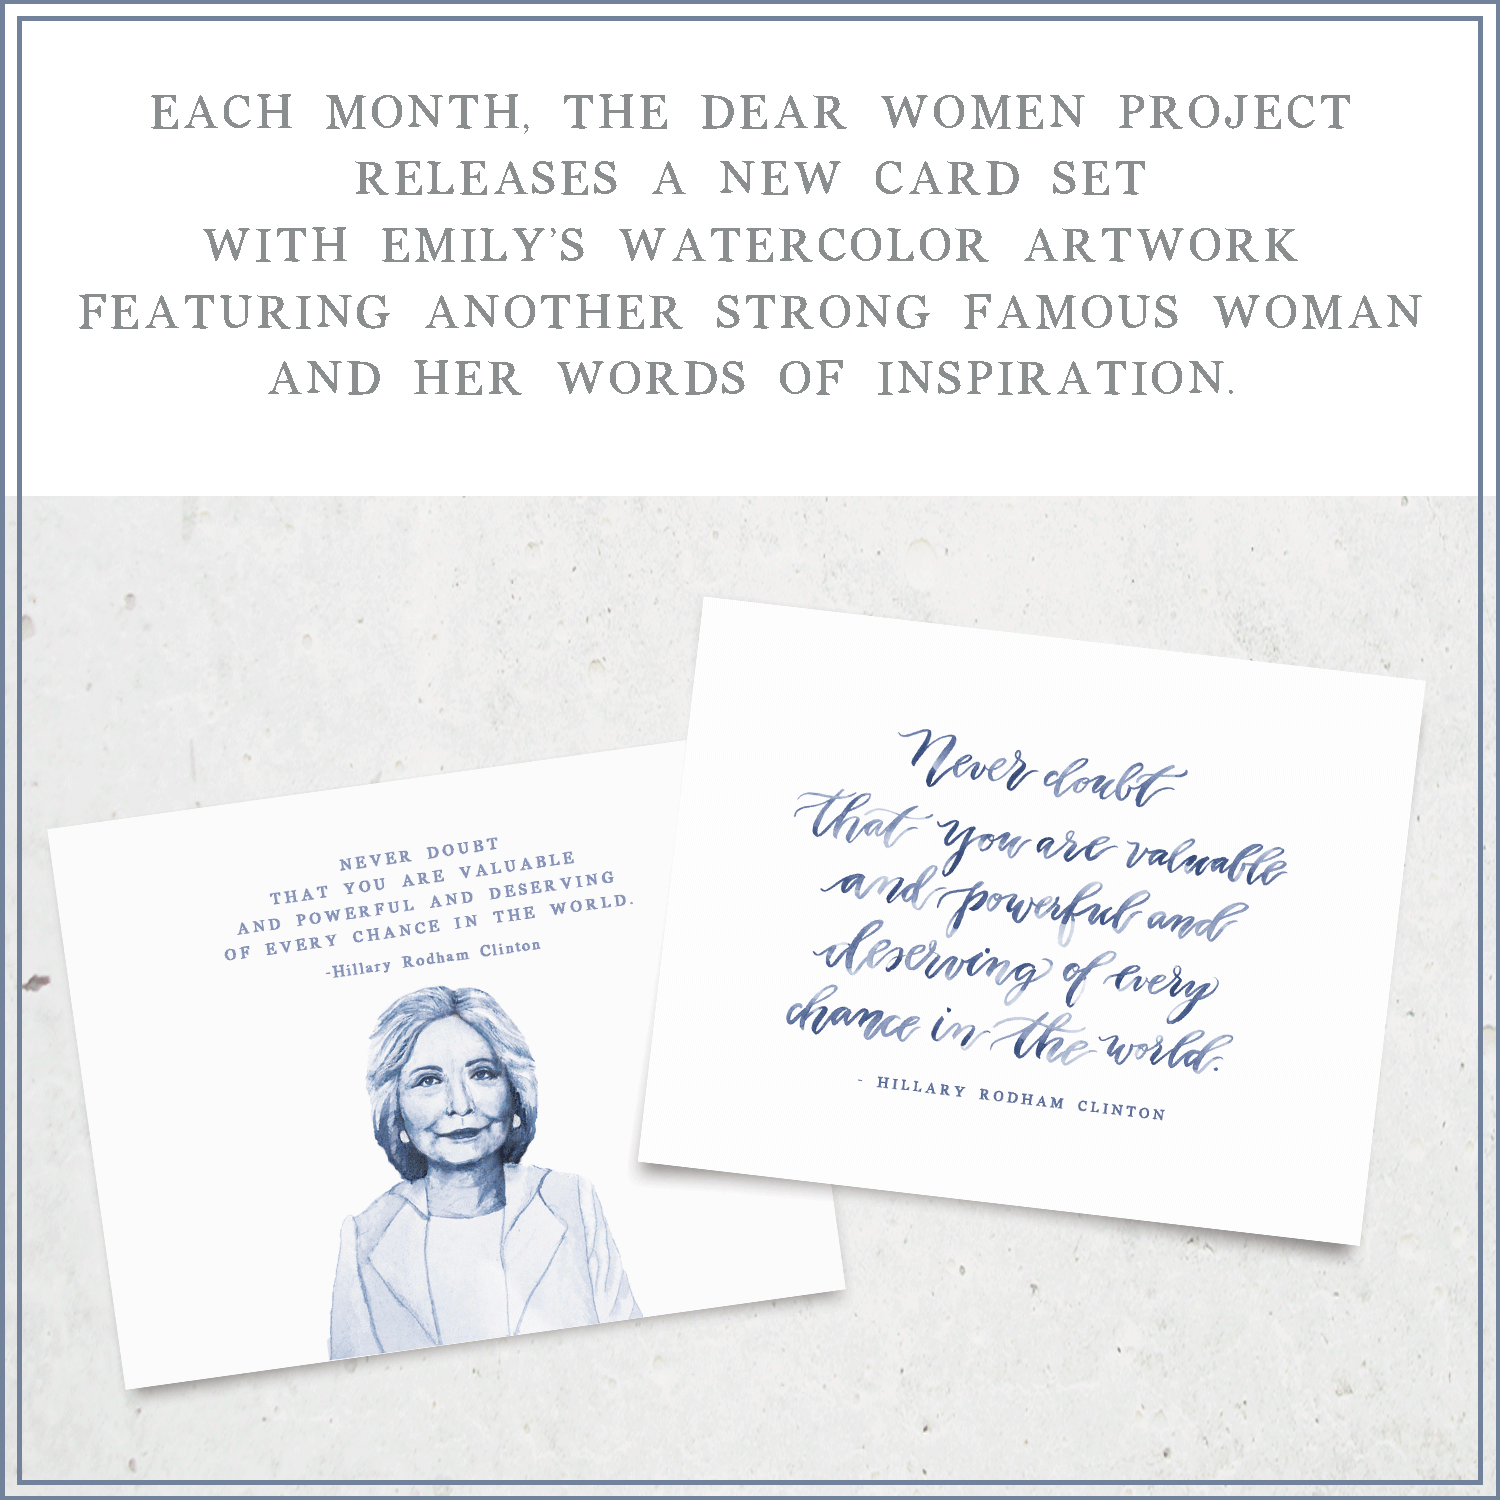 dear women project hillary rodham clinton cards.png